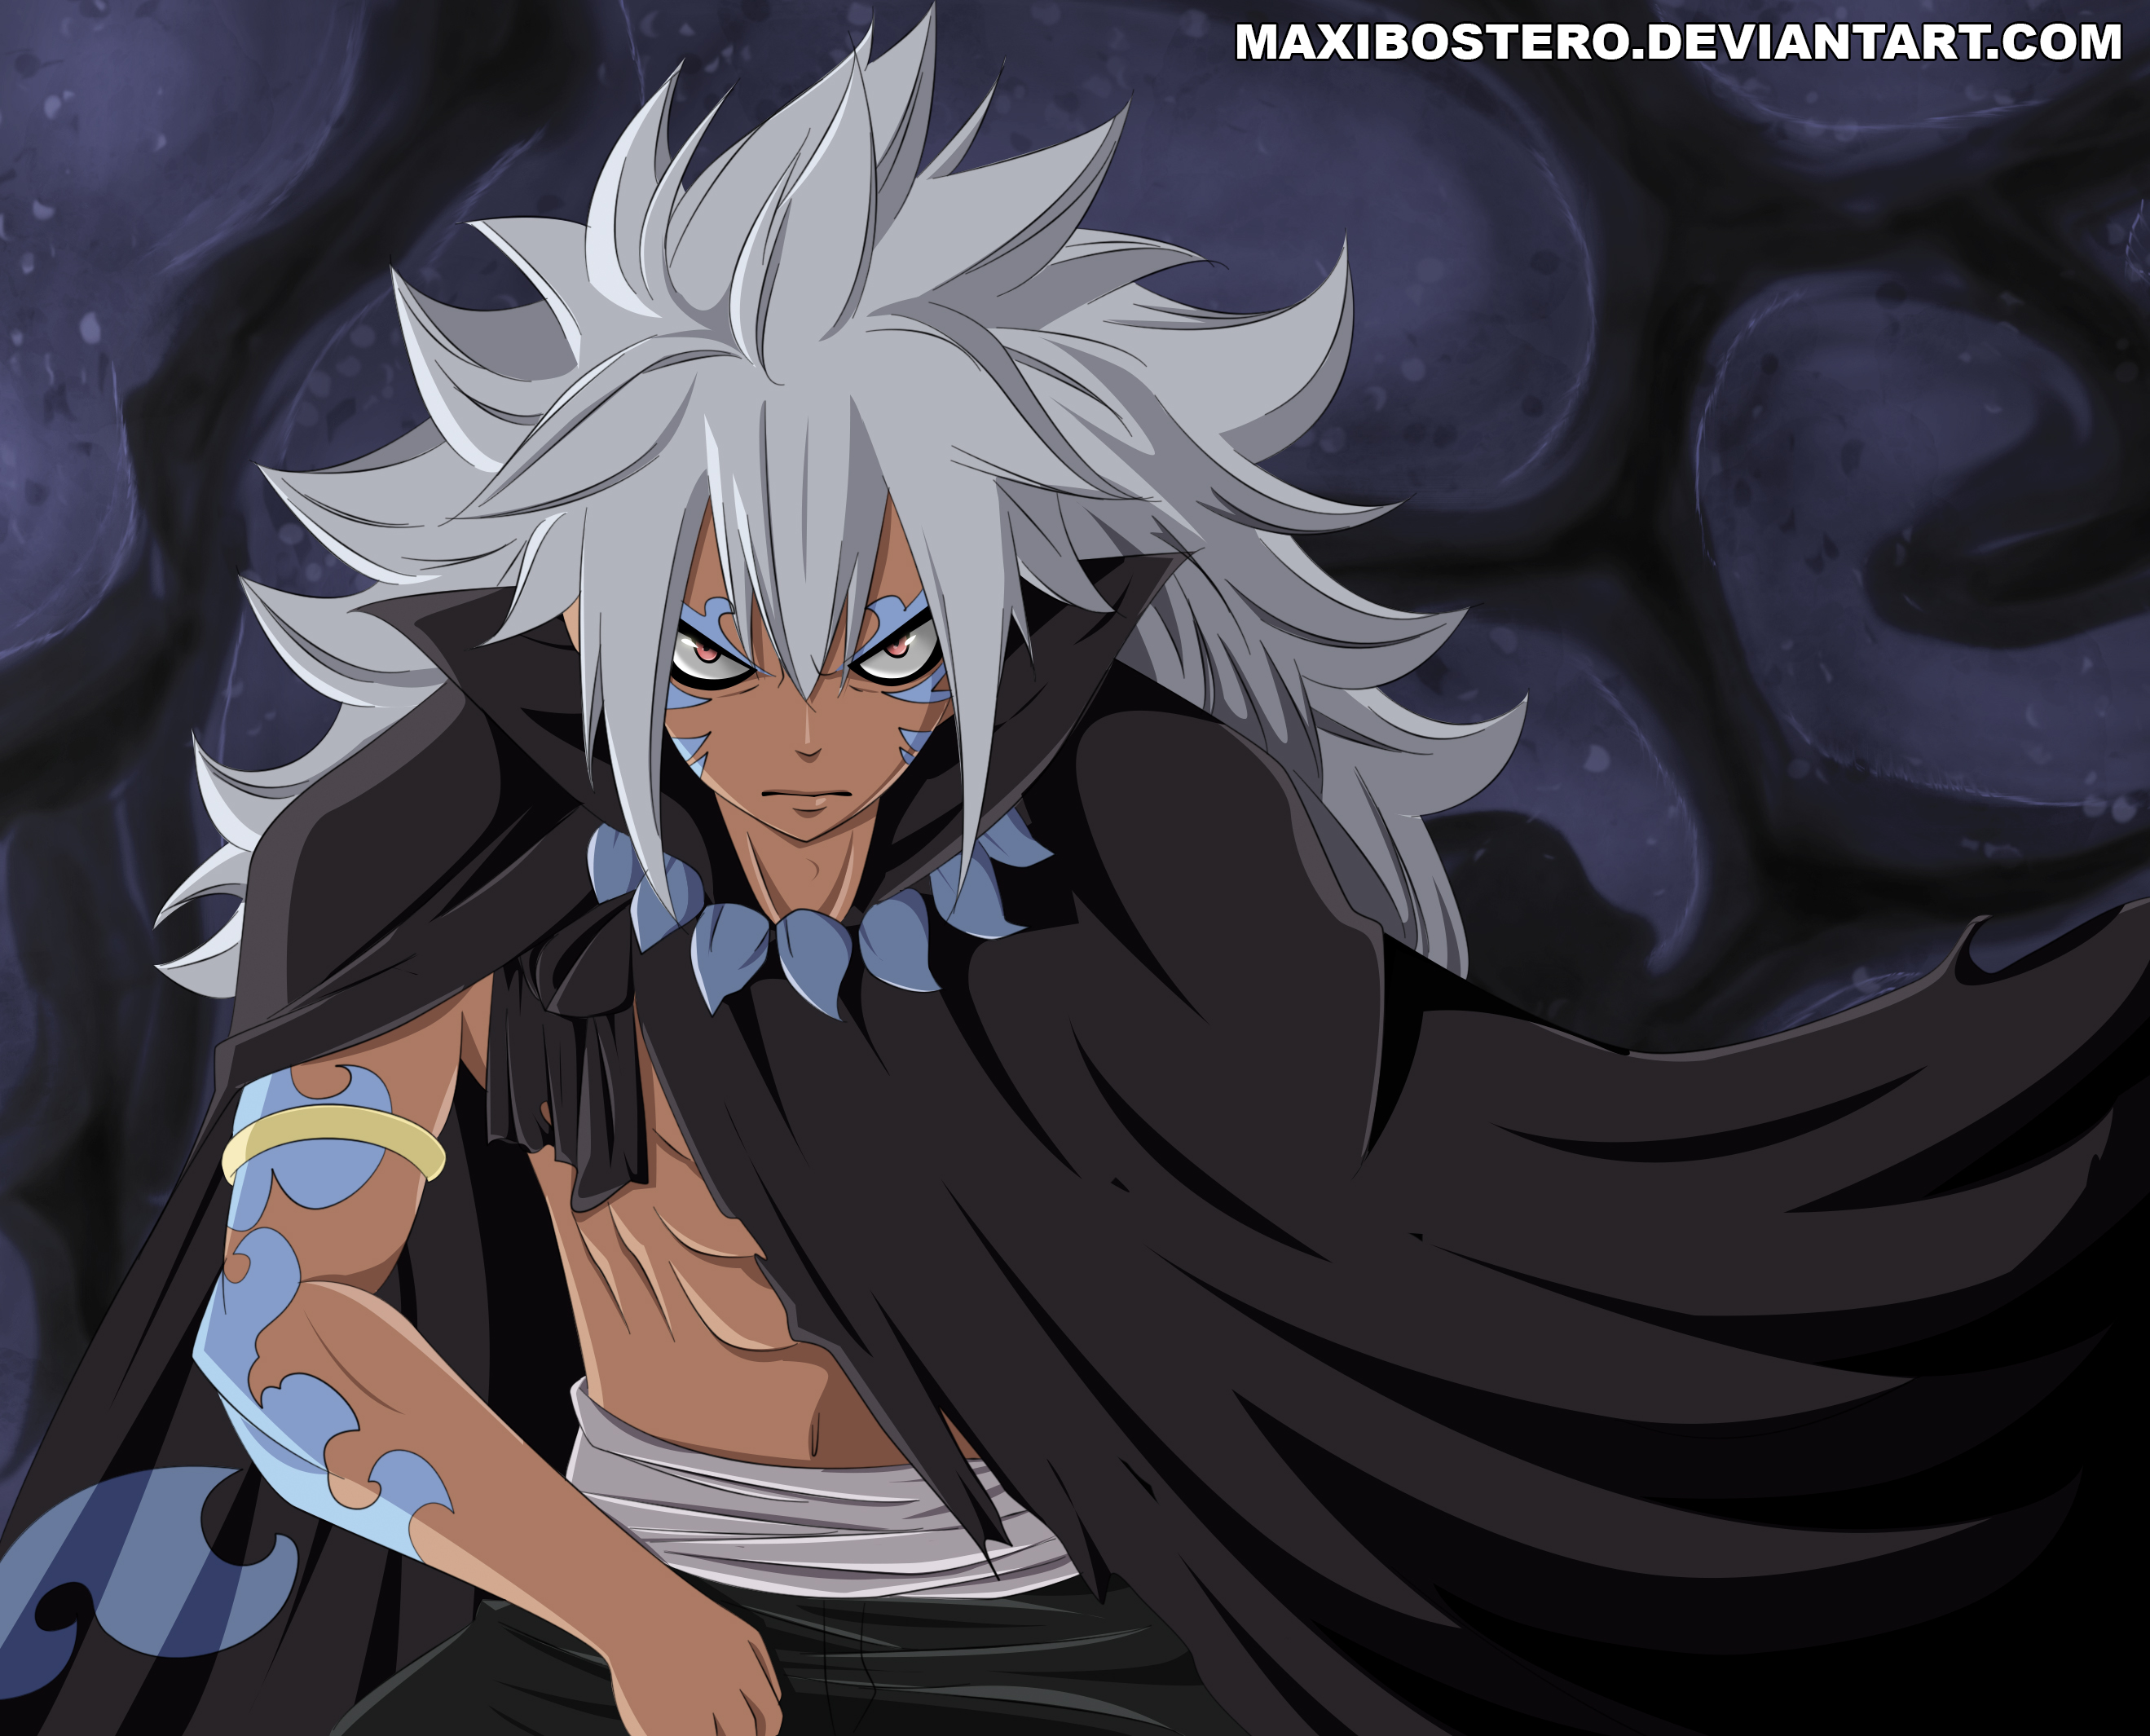 Fairy Tail 436 Acnologia Human Form by maxibostero | Daily ...